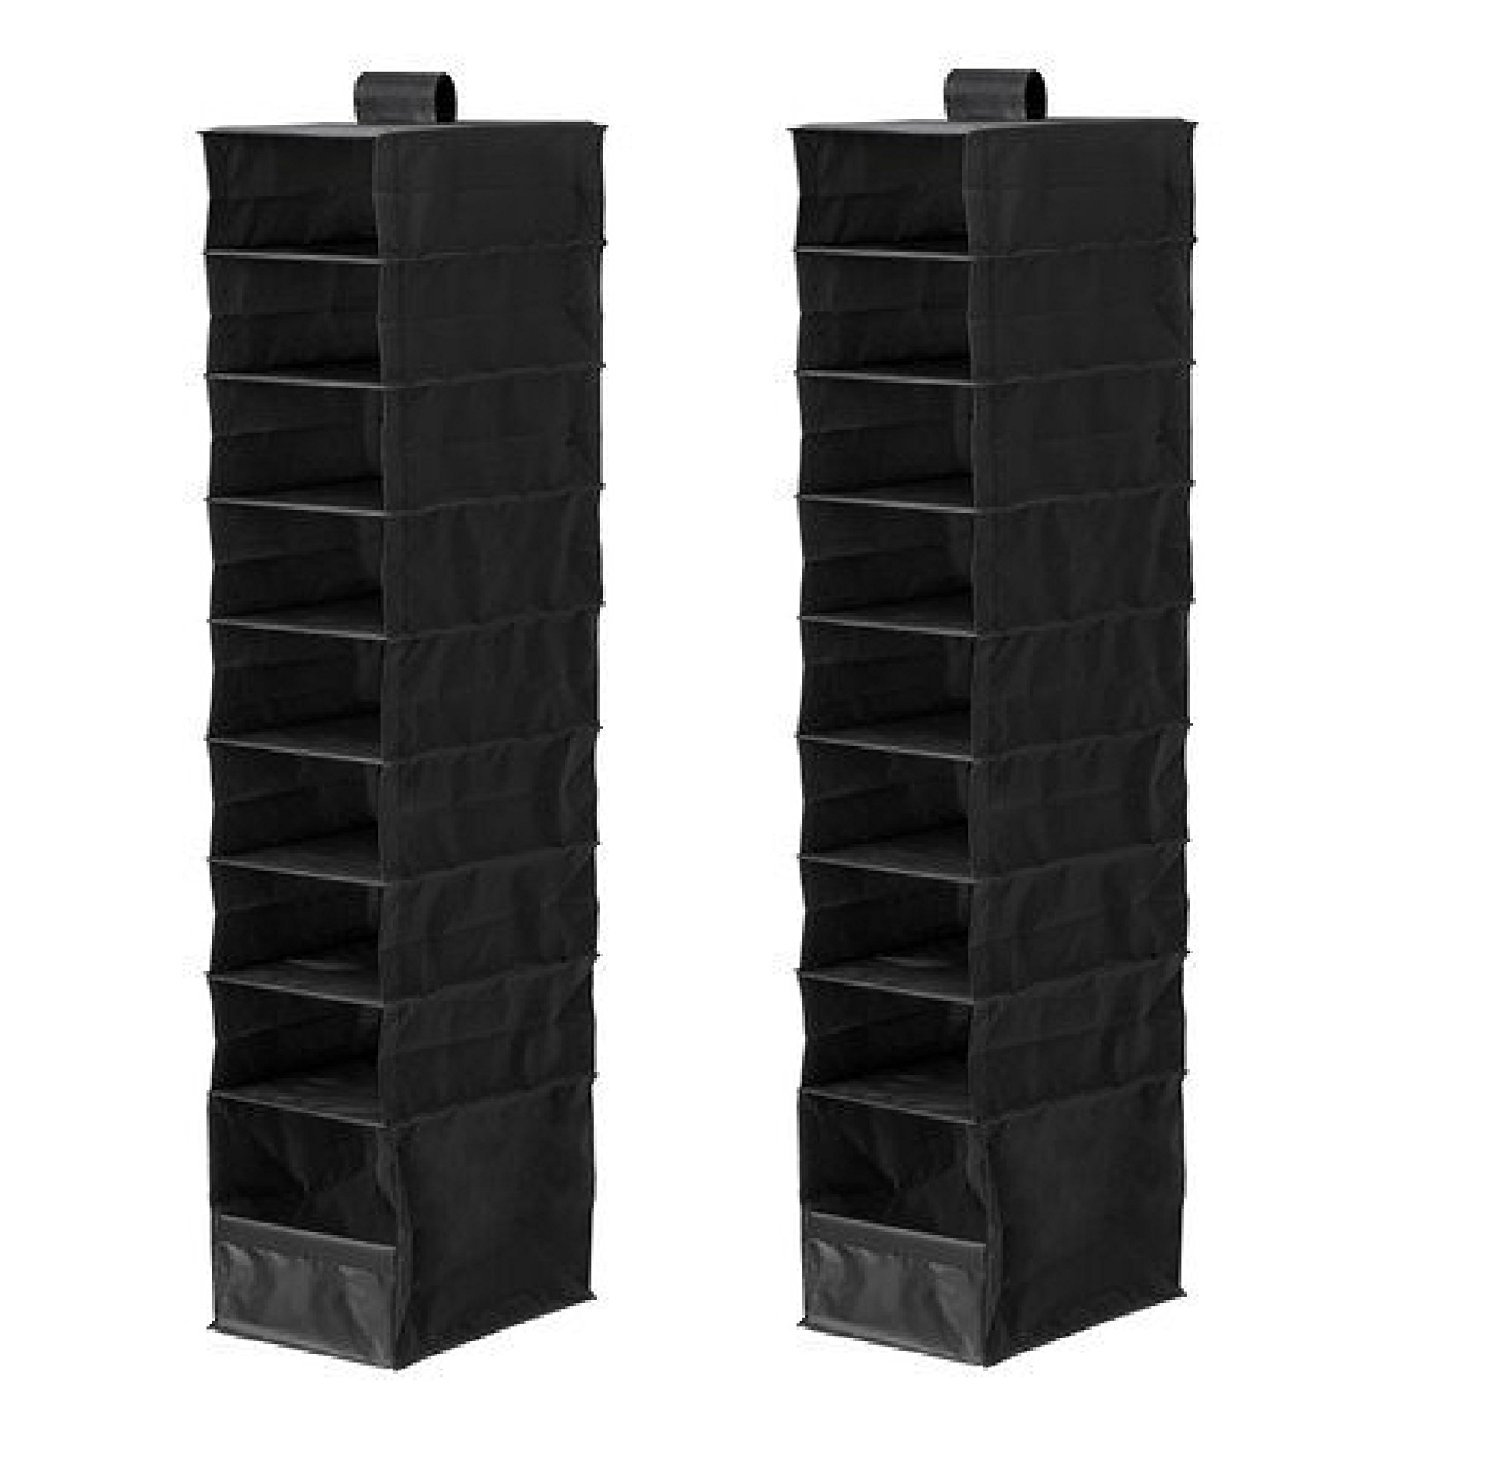 IKEA 603.062.72 SKUBB Hanging Organizer with 9 Compartments, Black Alpine Commerce